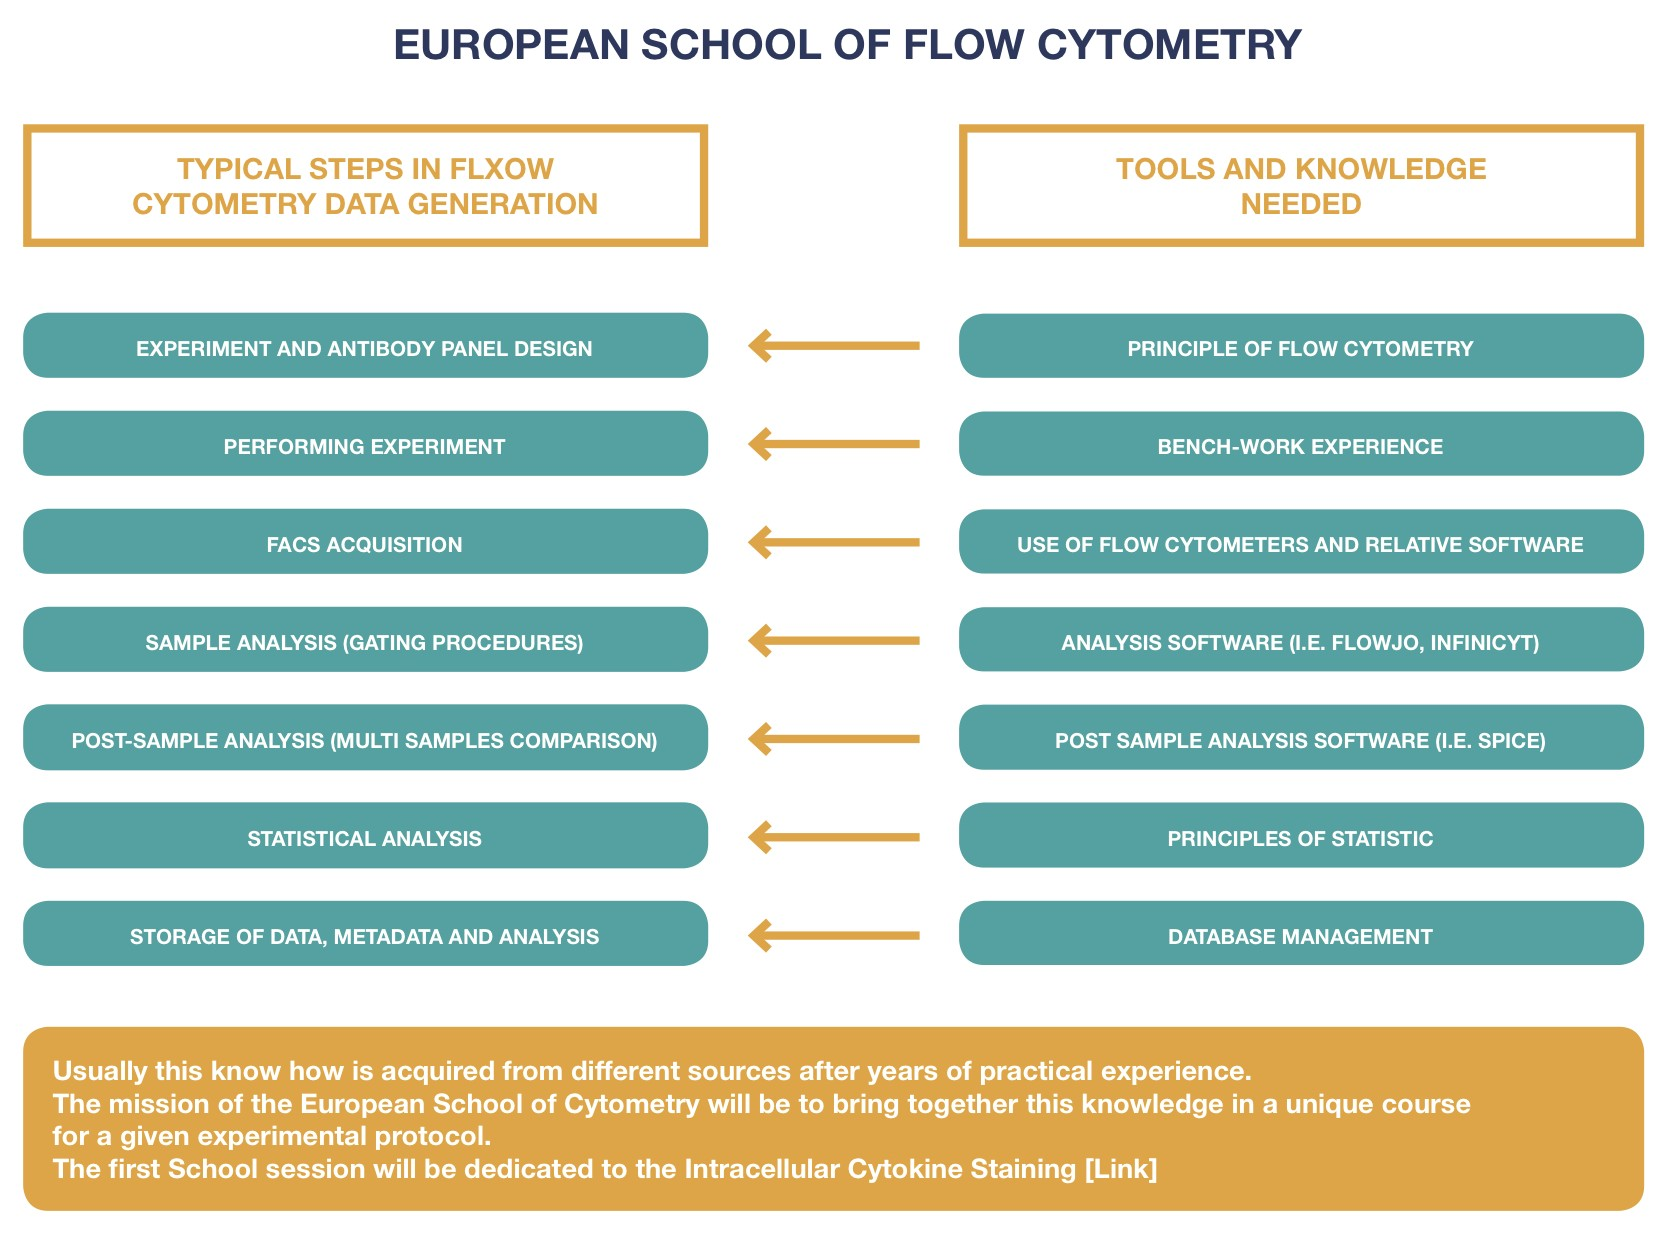 European School of Flow Cytometry